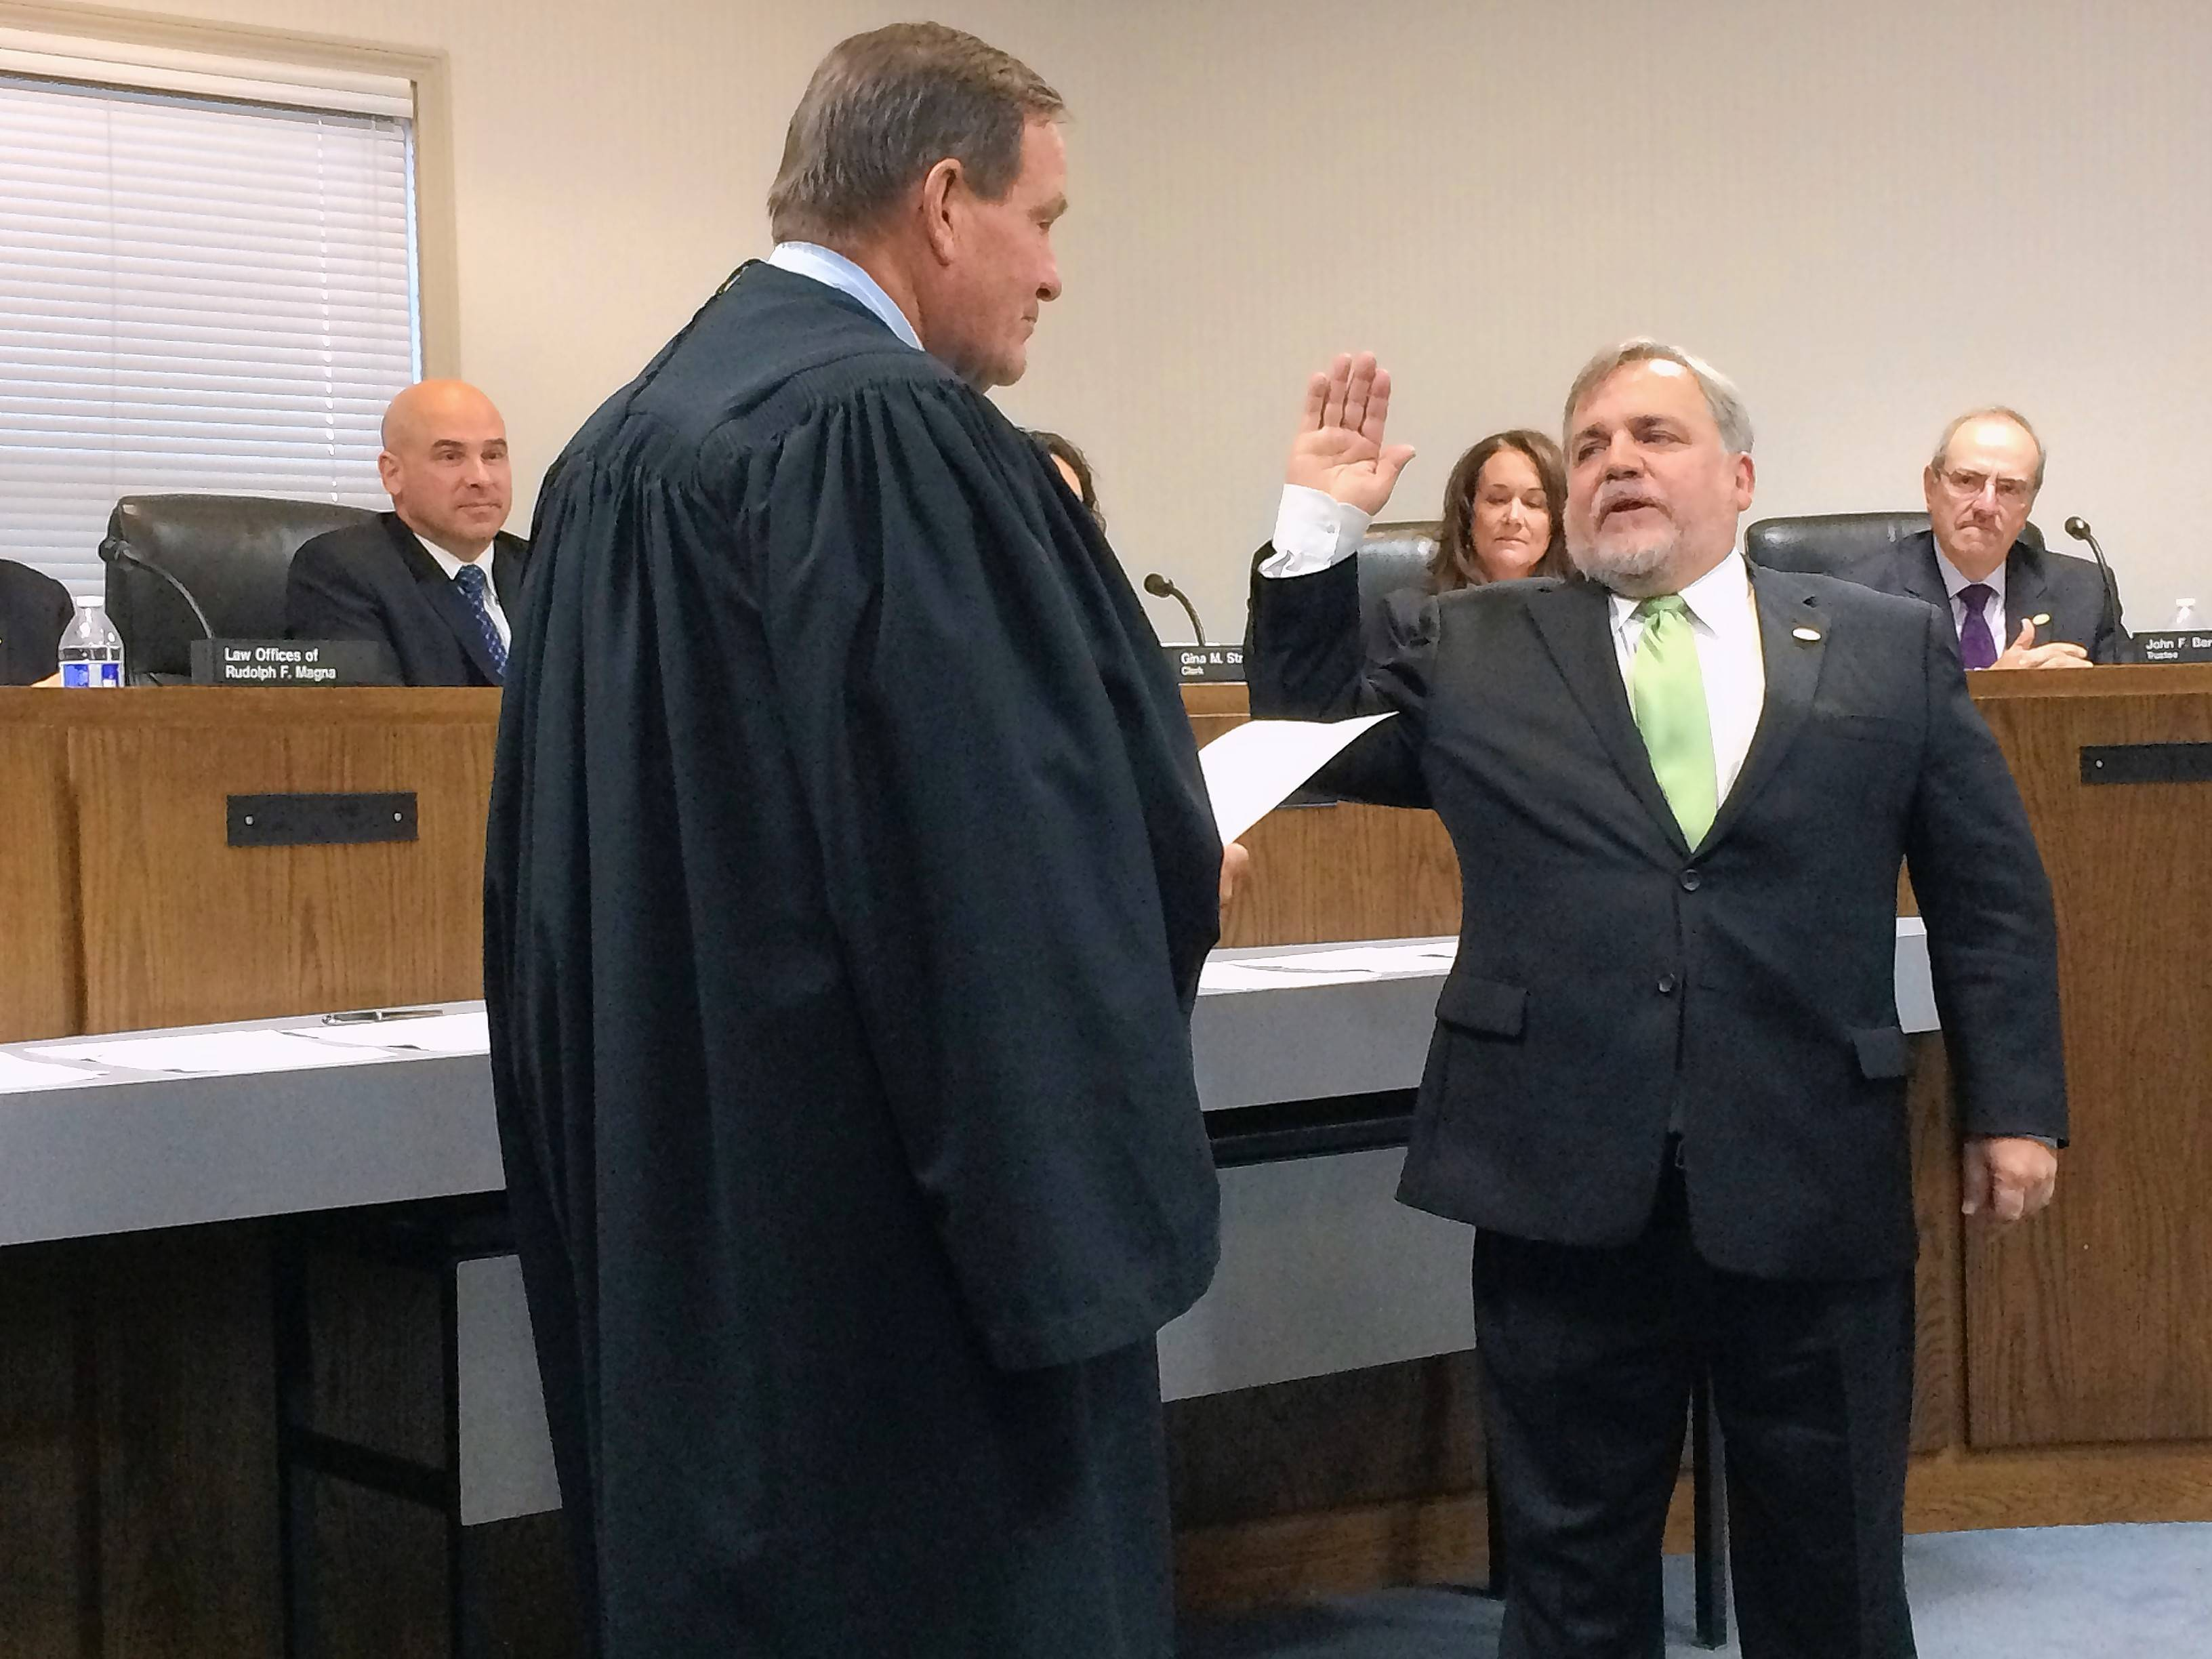 Knight sworn in as Wauconda's new mayor